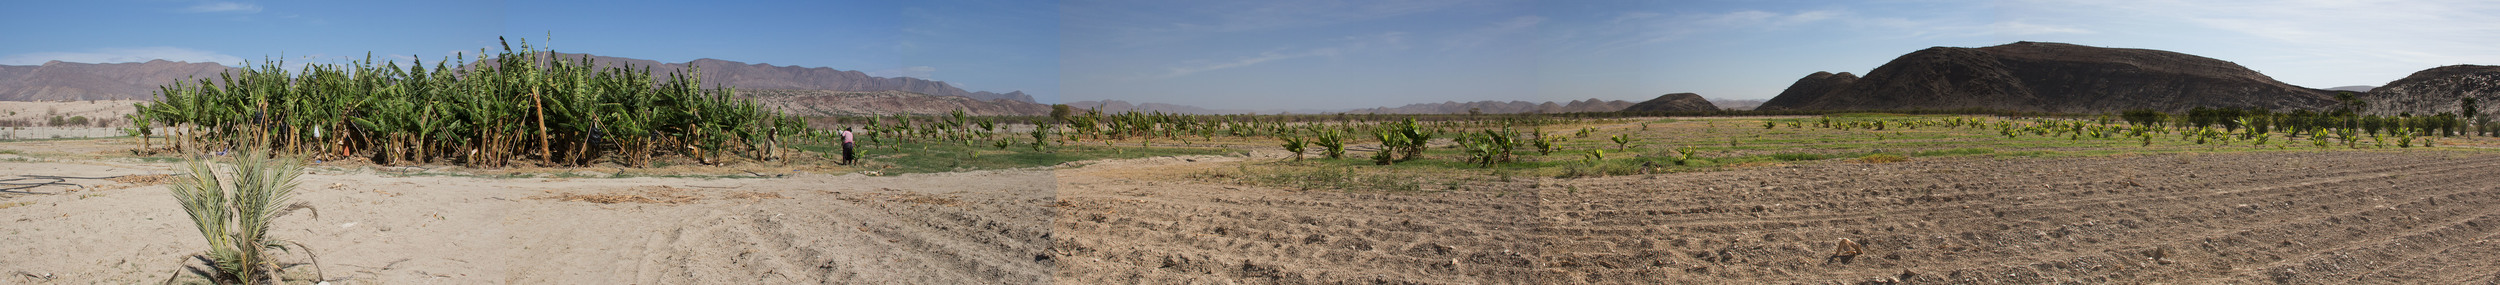 Bennie's land at Warmquelle. Banana plants are on the left.